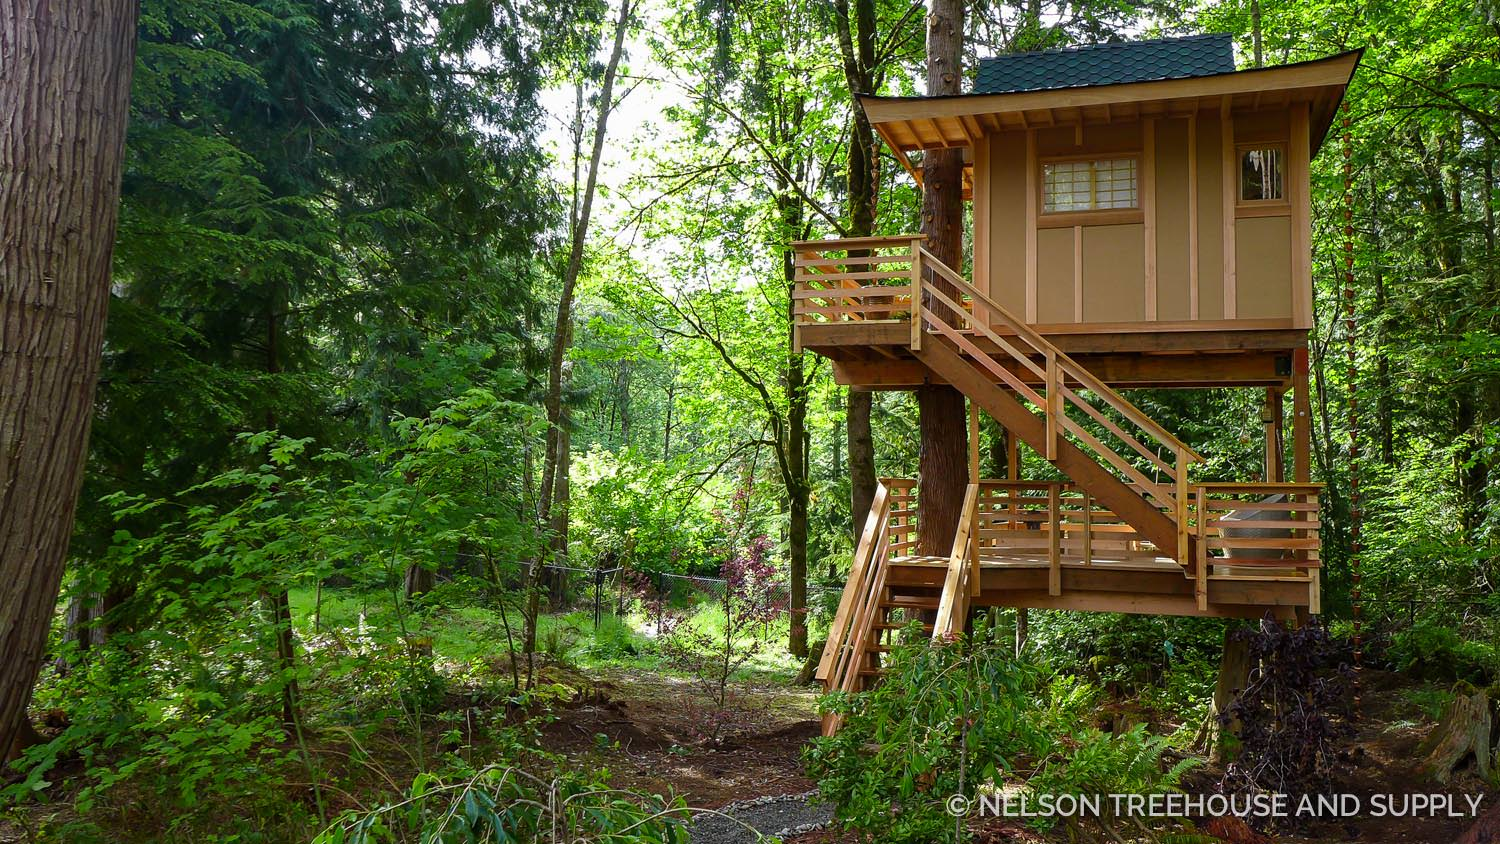 Treehousefriday Towering Treetop Teahouse Nelson Treehouse